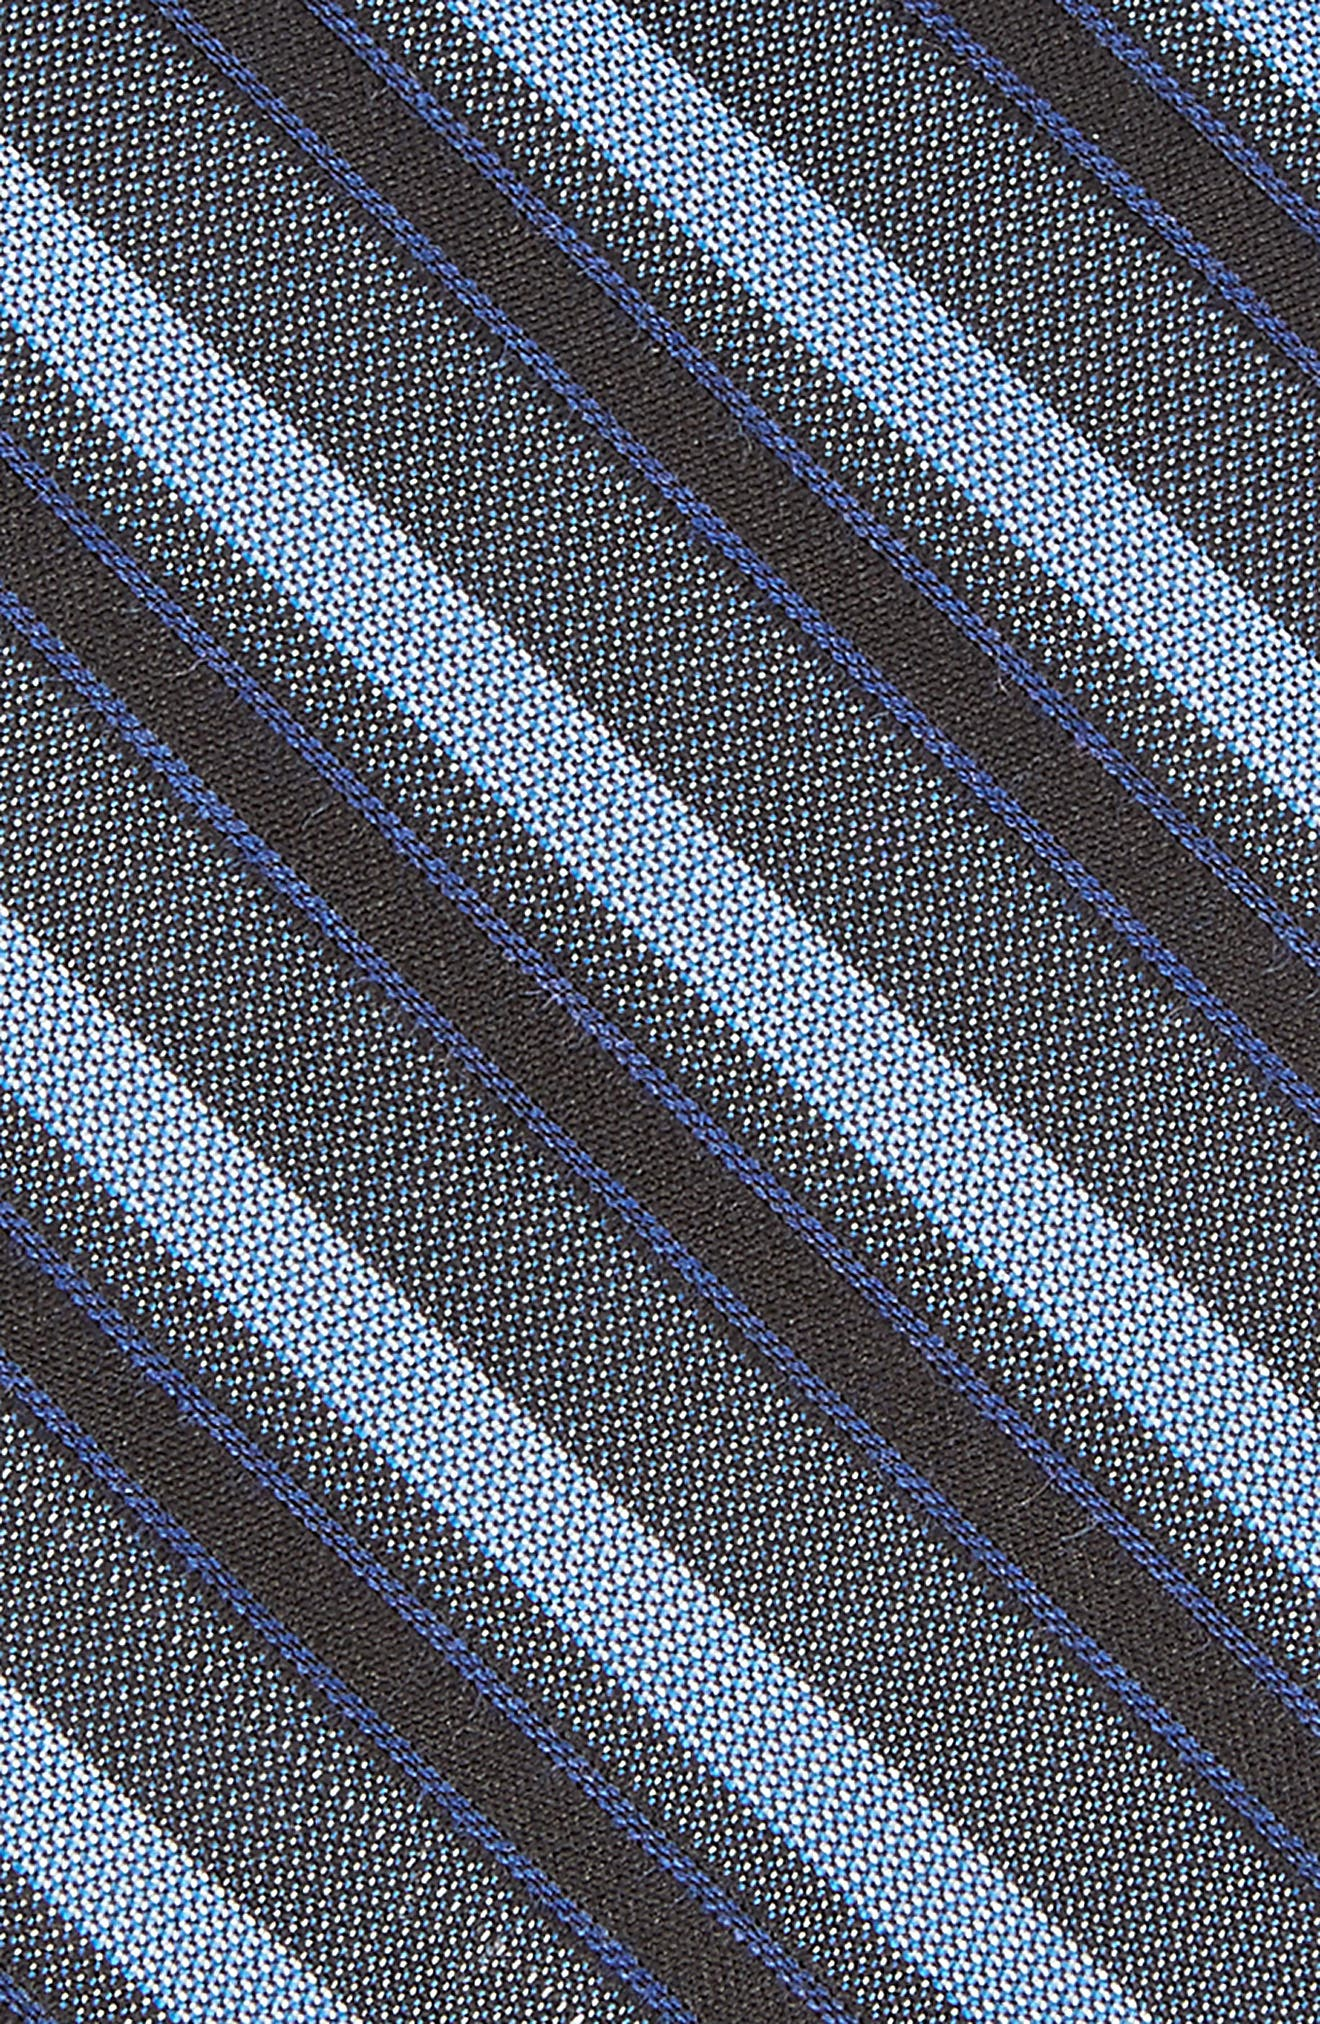 Shadow Stripe Tie,                             Alternate thumbnail 2, color,                             Navy